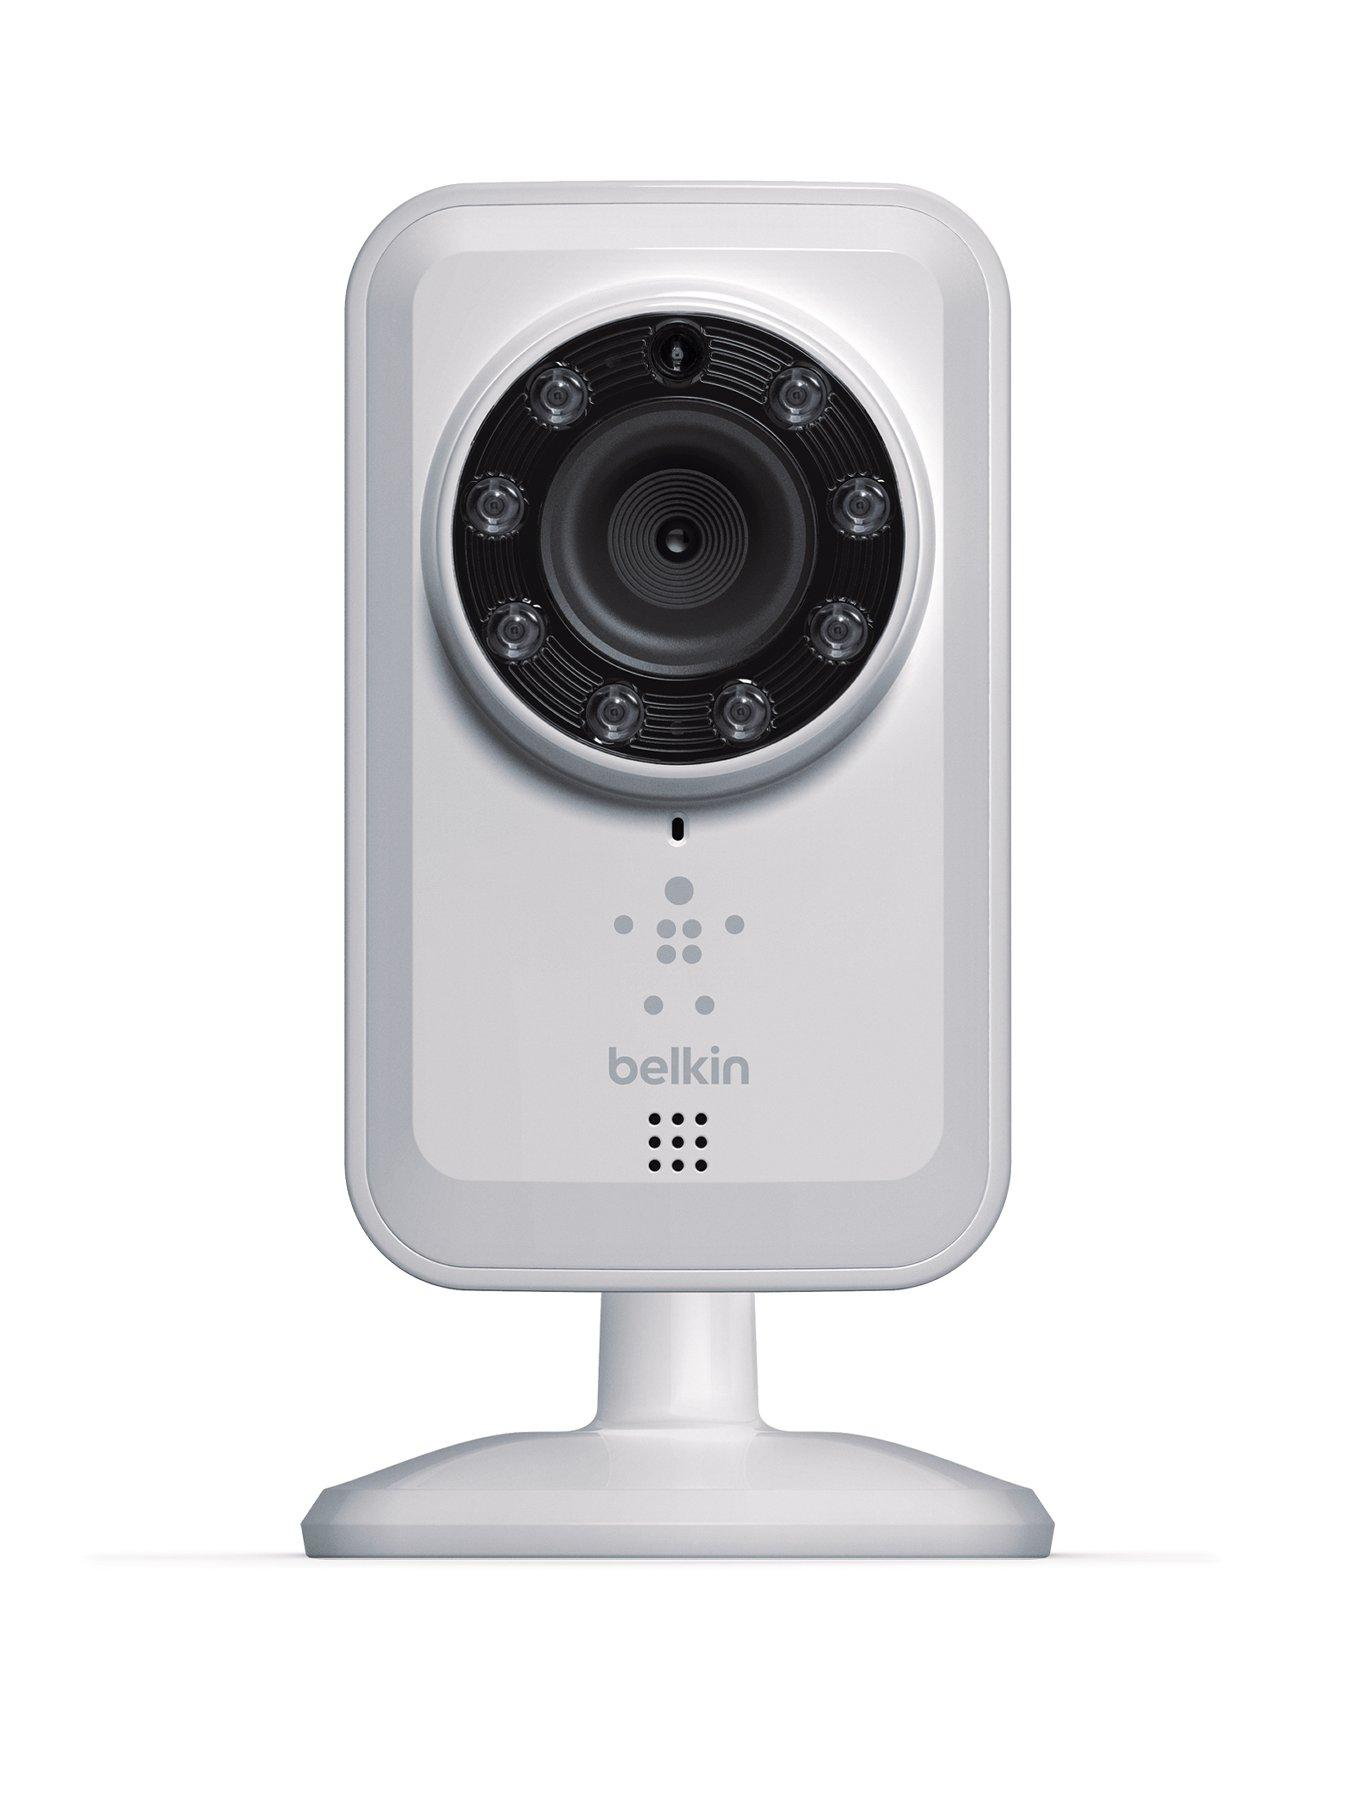 Belkin IP Netcam for Indoor and Night Vision - White